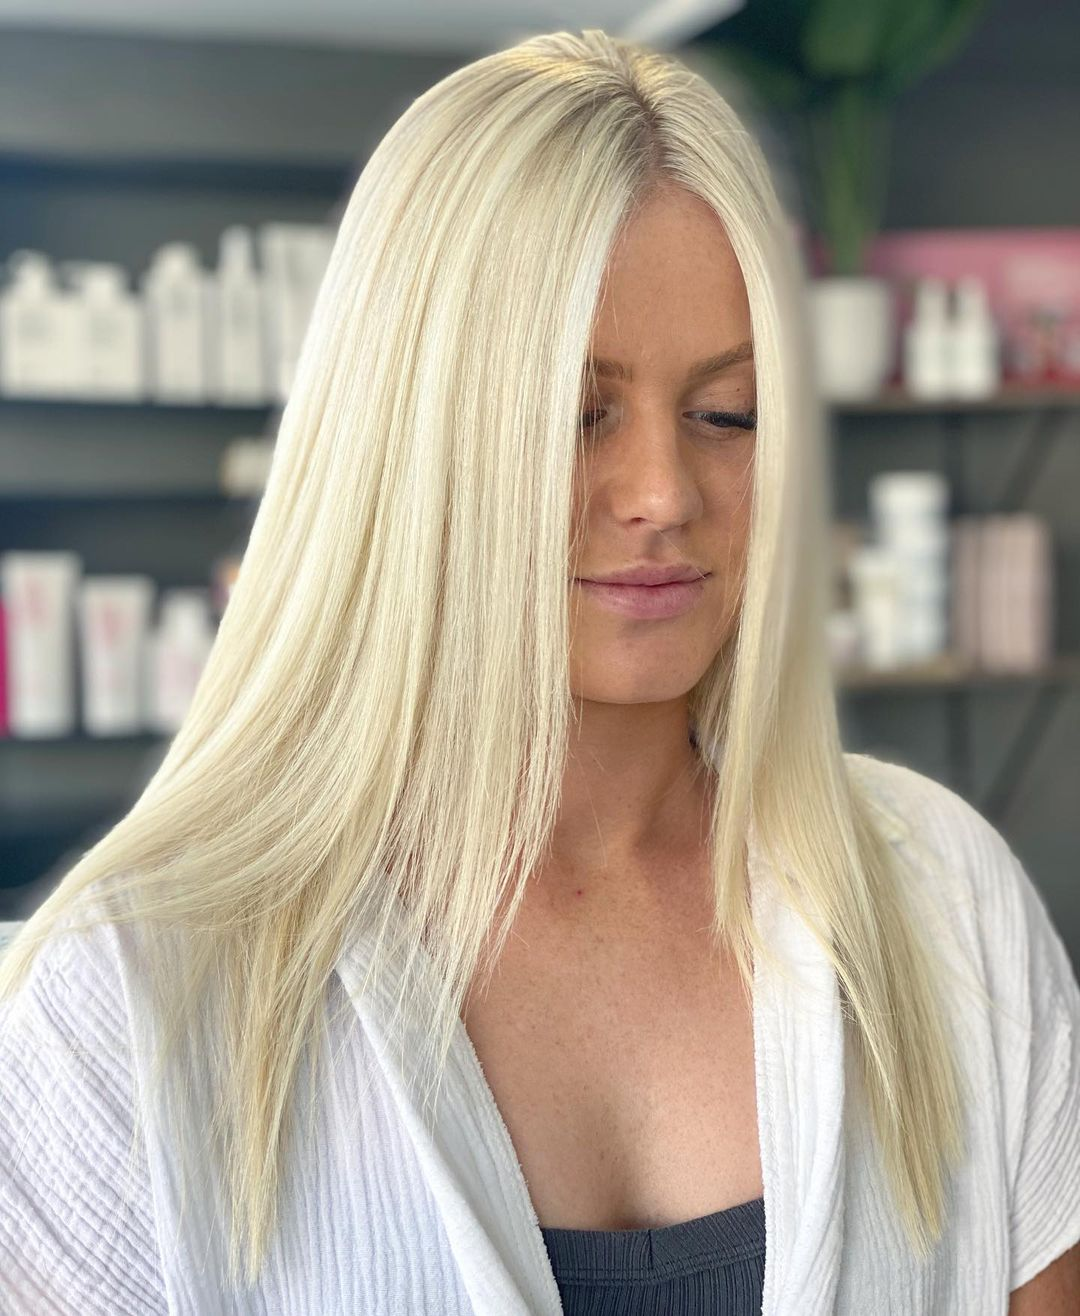 Bleached Blonde hair Products and Treatments